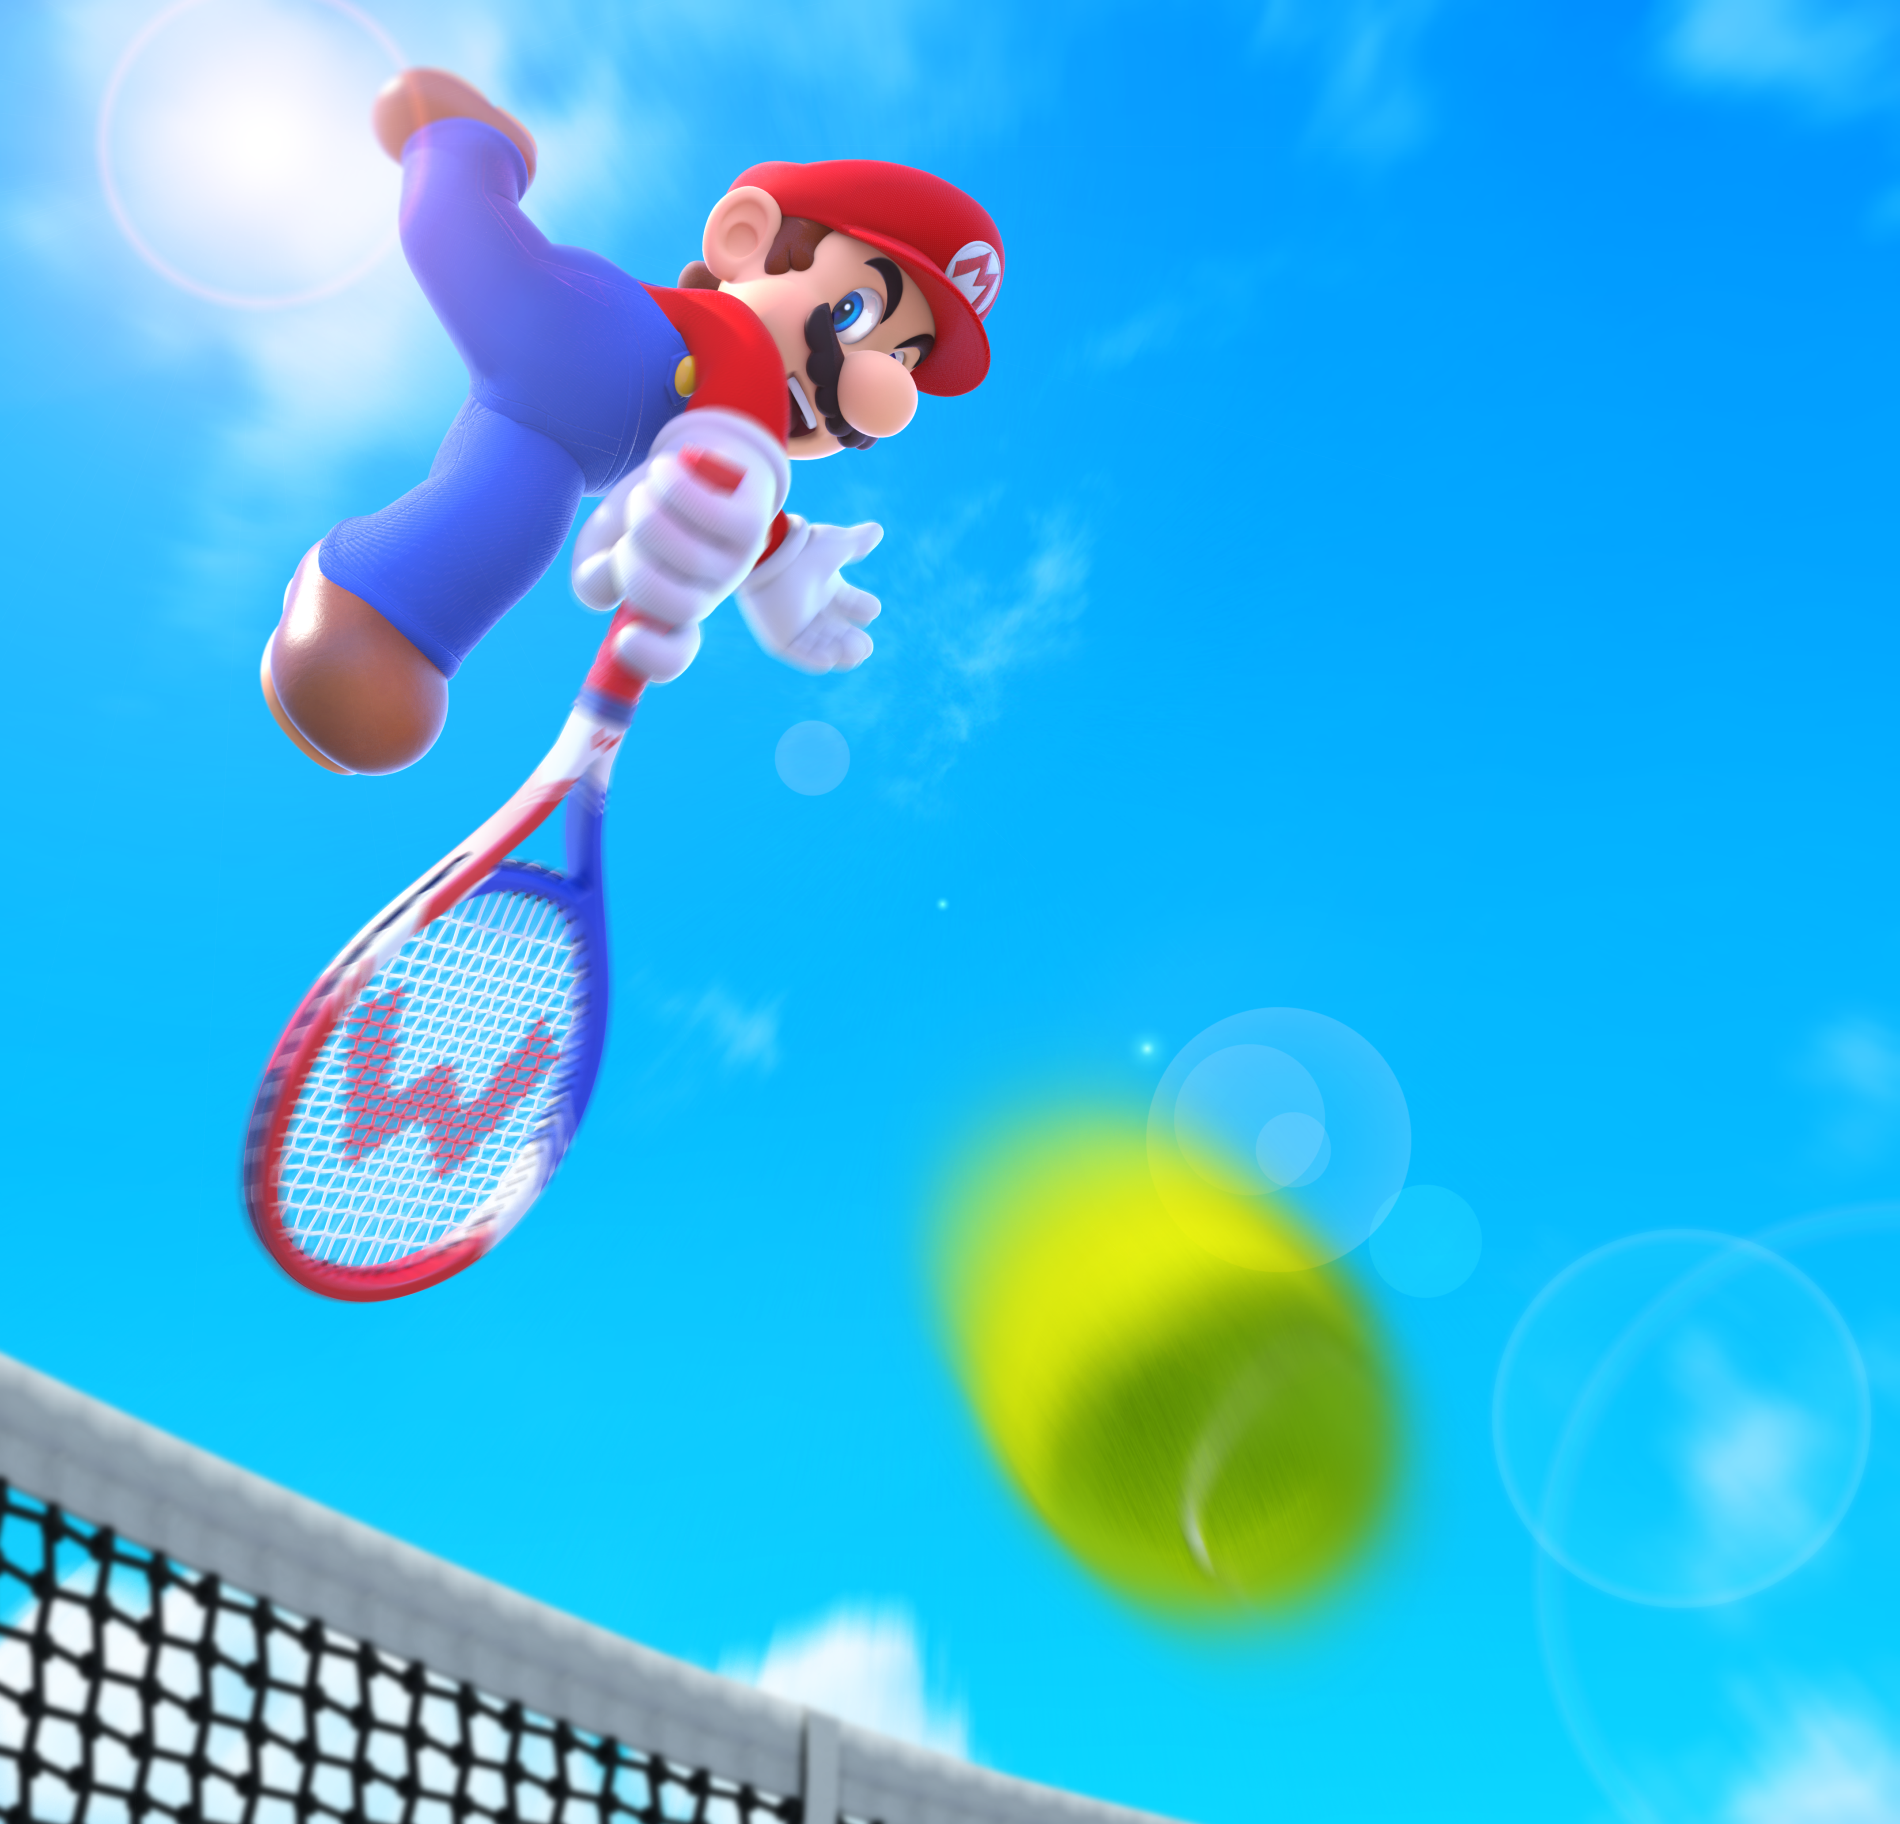 mario tennis ultra smash keyart